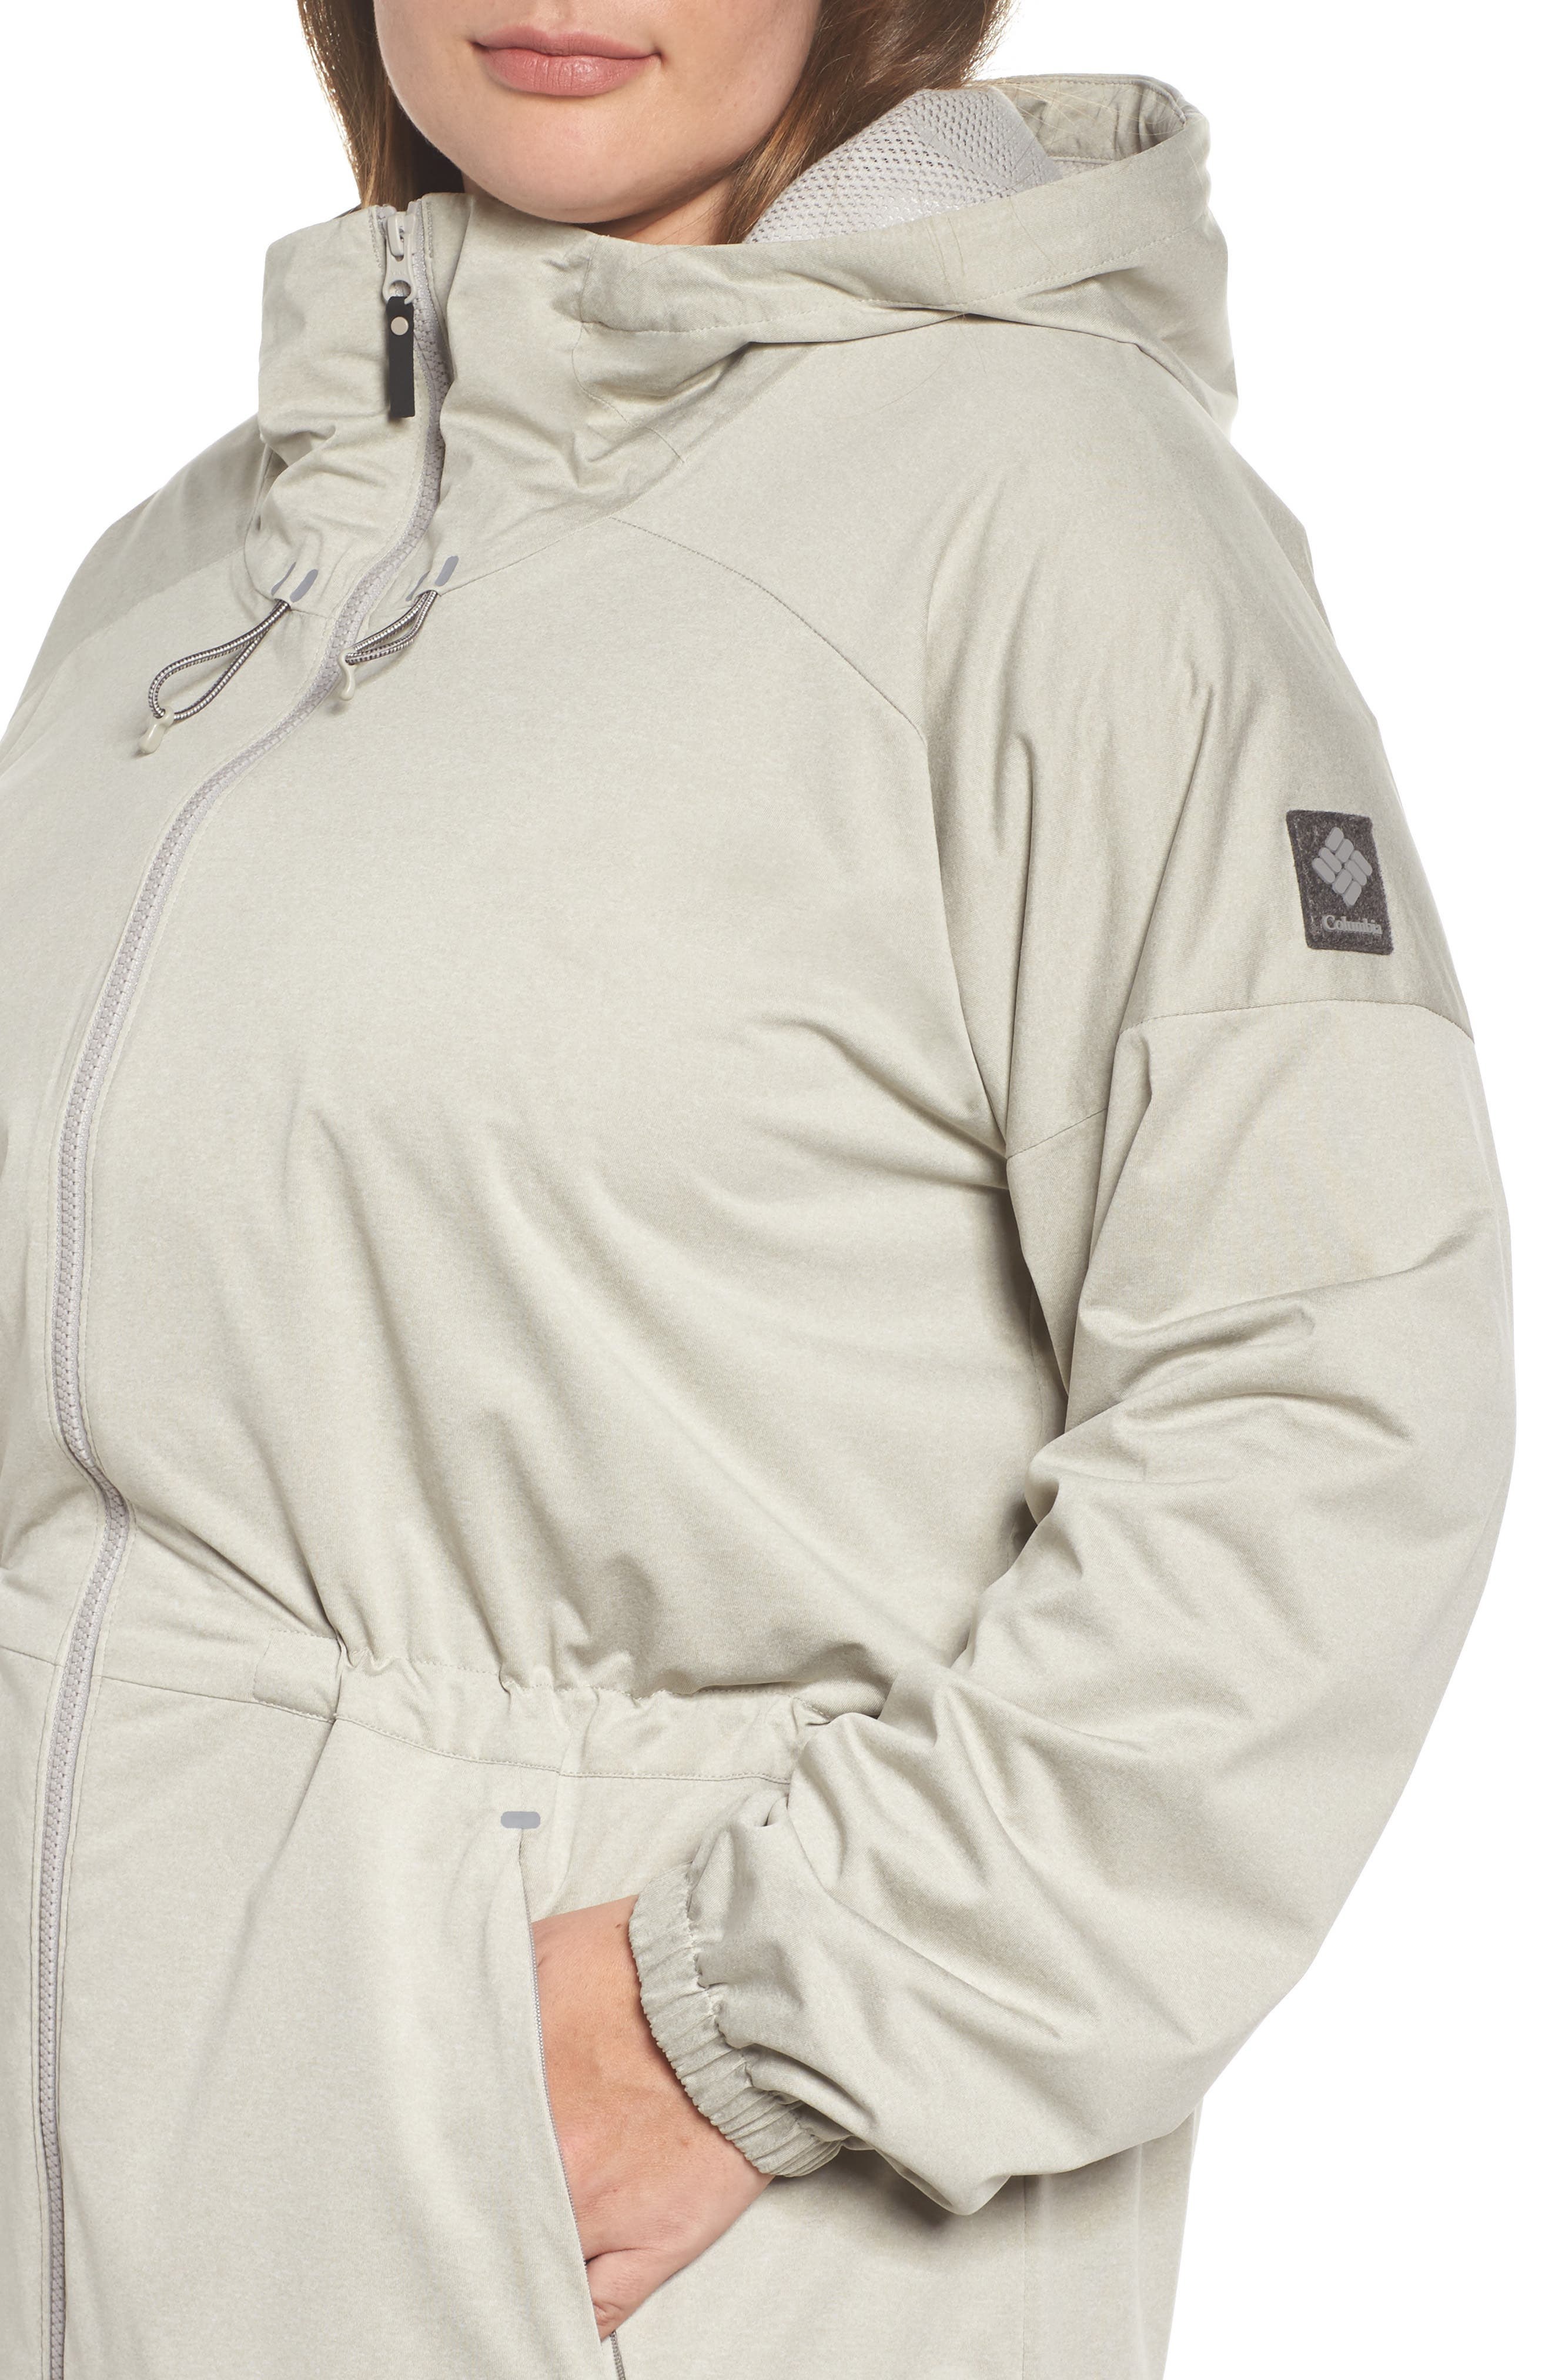 Northbounder Waterproof Hooded Jacket,                             Alternate thumbnail 4, color,                             Flint Grey Heather